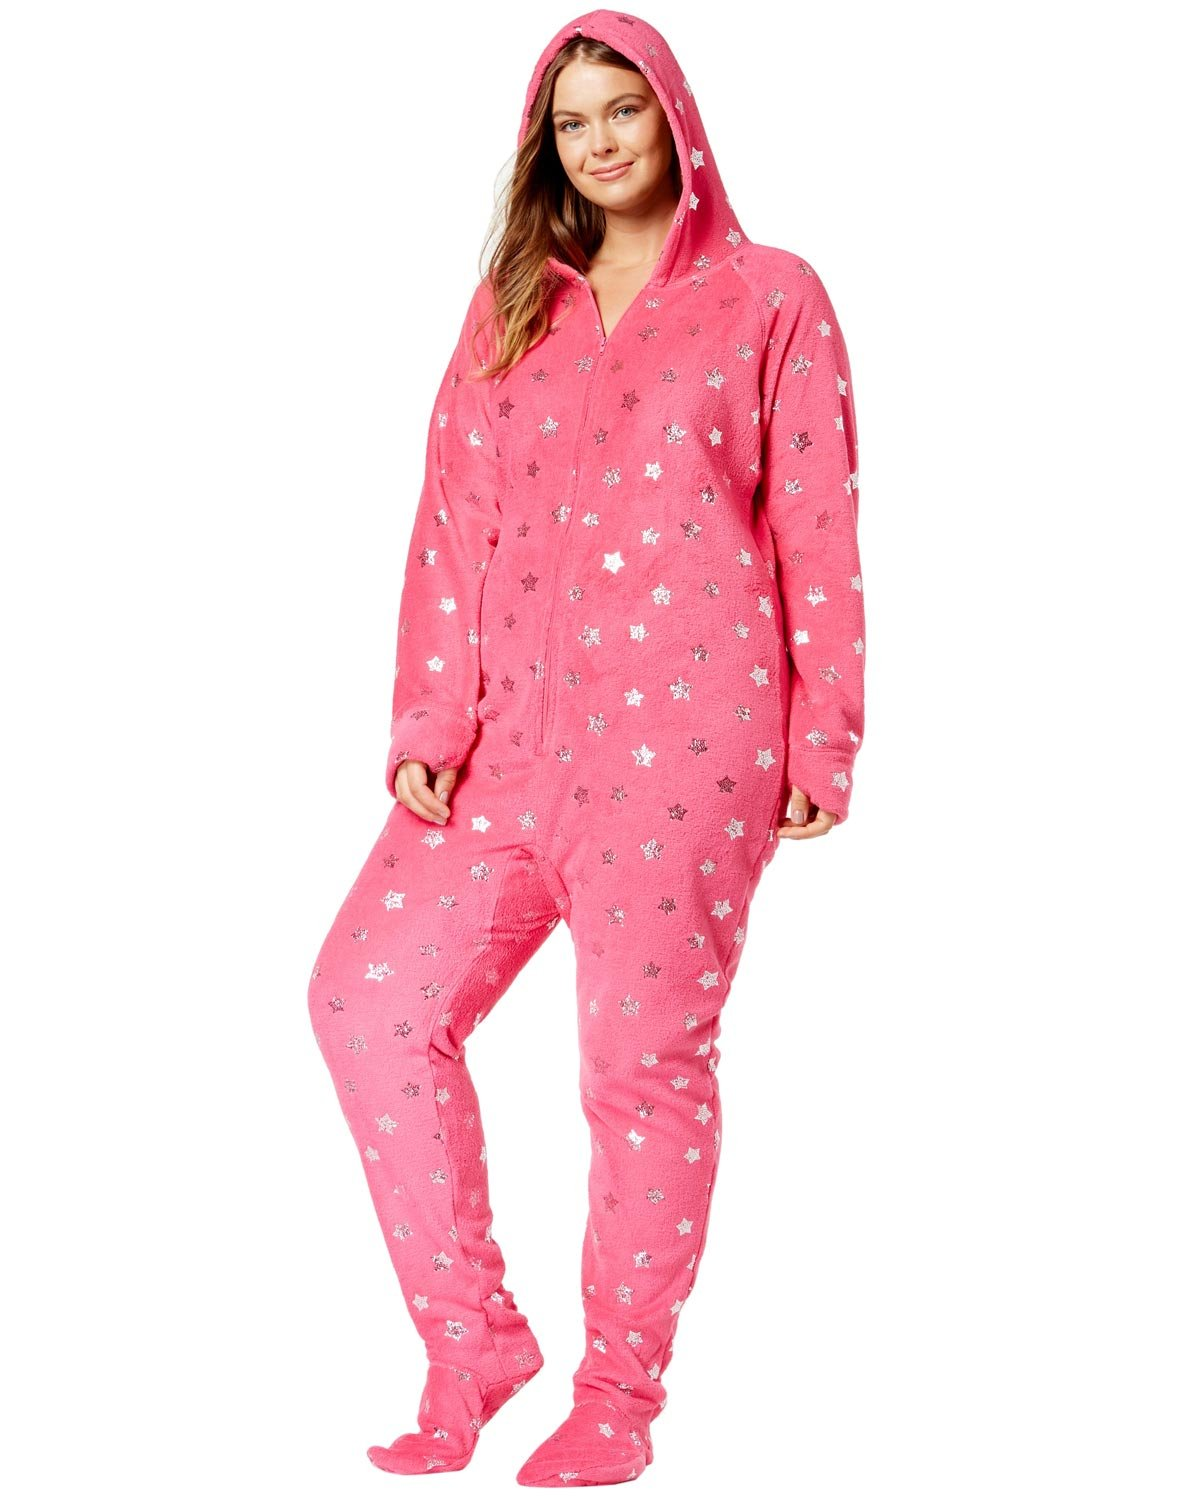 Jenni by Jennifer Moore Plus Size Hooded Printed Footed Jumpsuit 1X Foil Stars